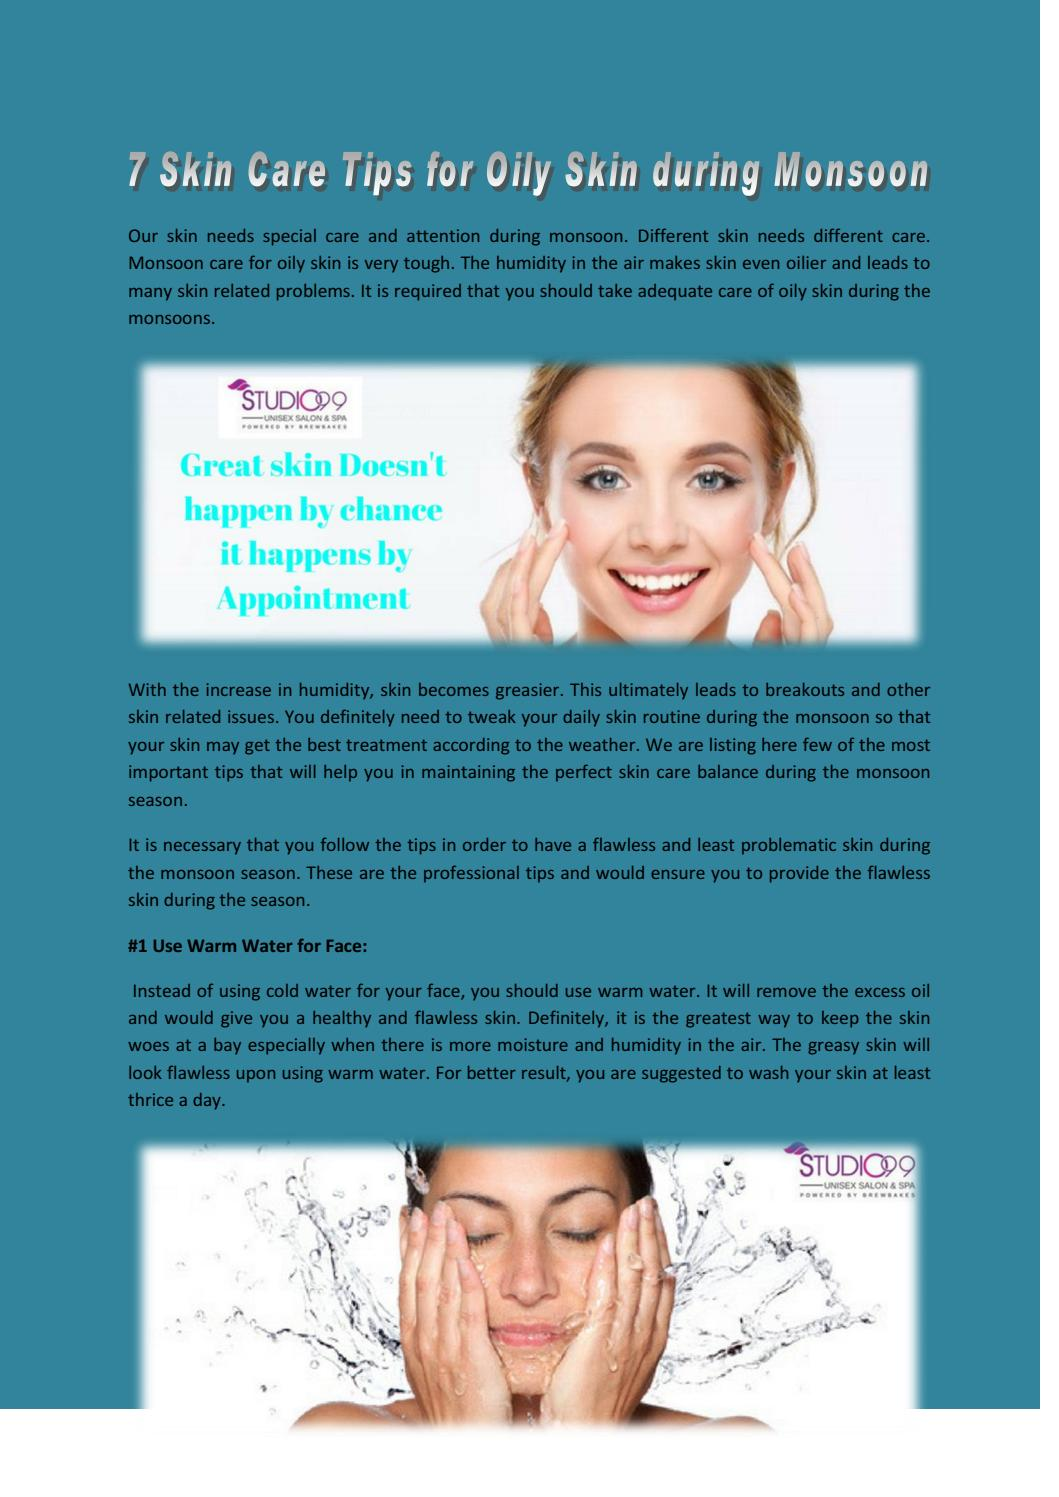 1111 Skin Care Tips for Oily Skin during Monsoon by studio1111salon11